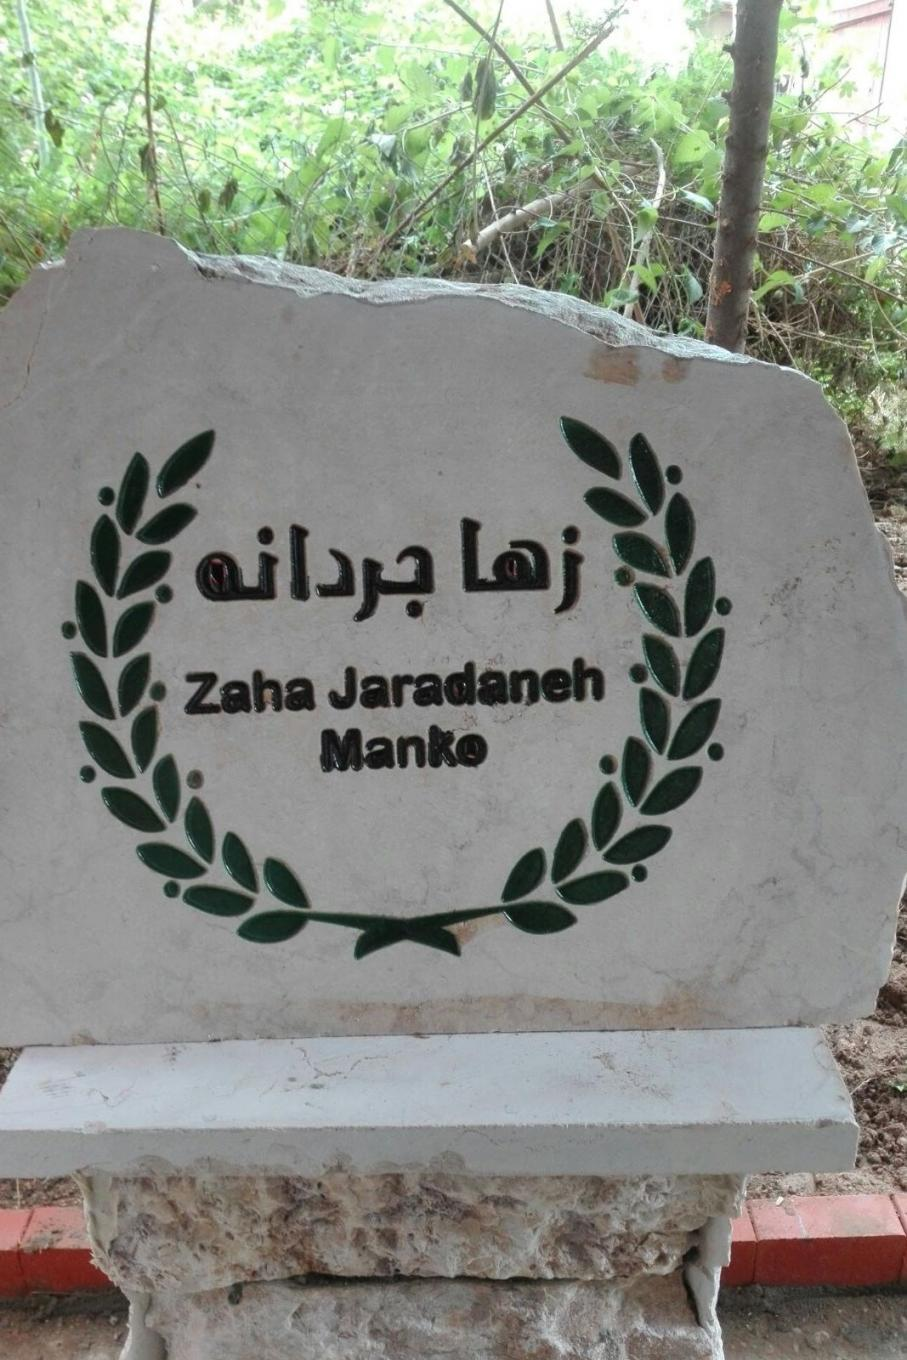 Memorial stone for Zaha Jarnadaneh Manko